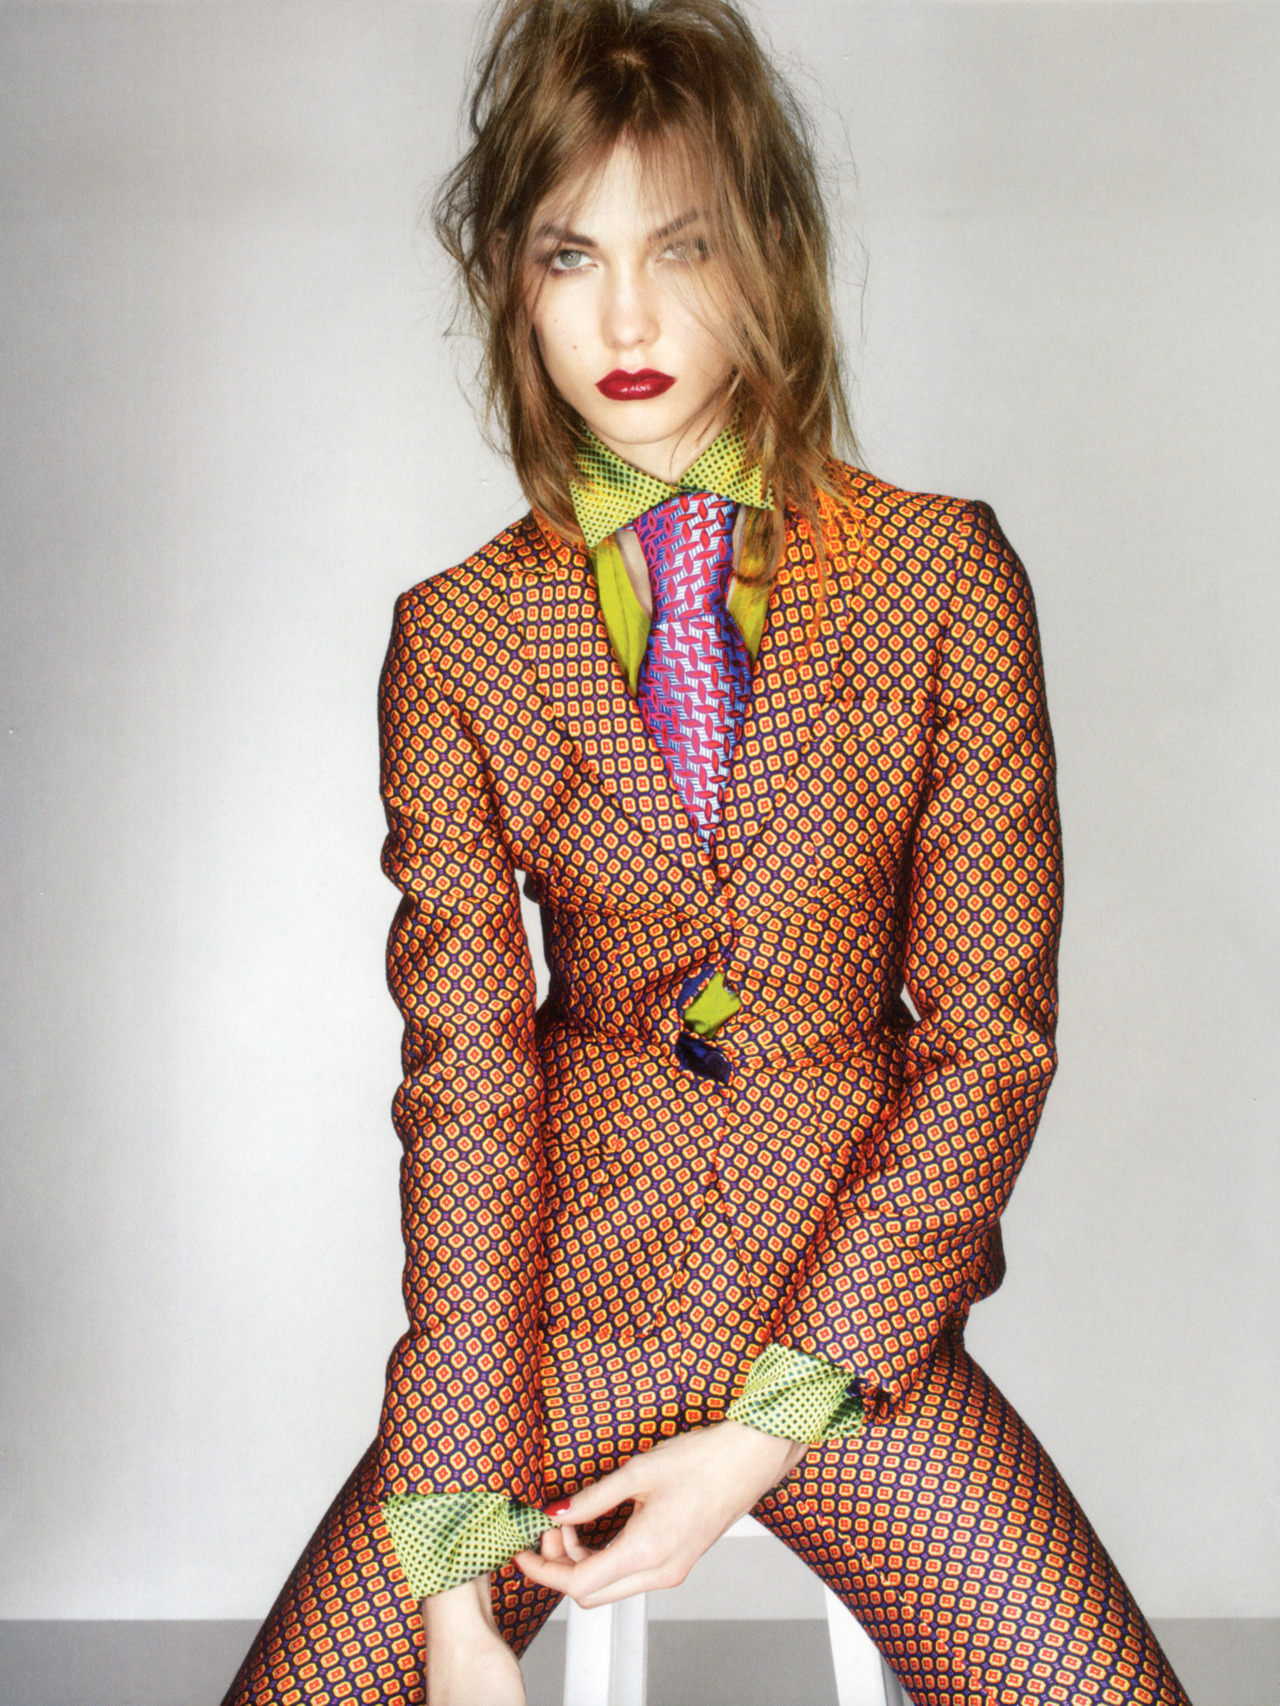 bohemea:  Karlie Kloss: Dandy Haze - Vogue UK by Nick Knight, September 2012